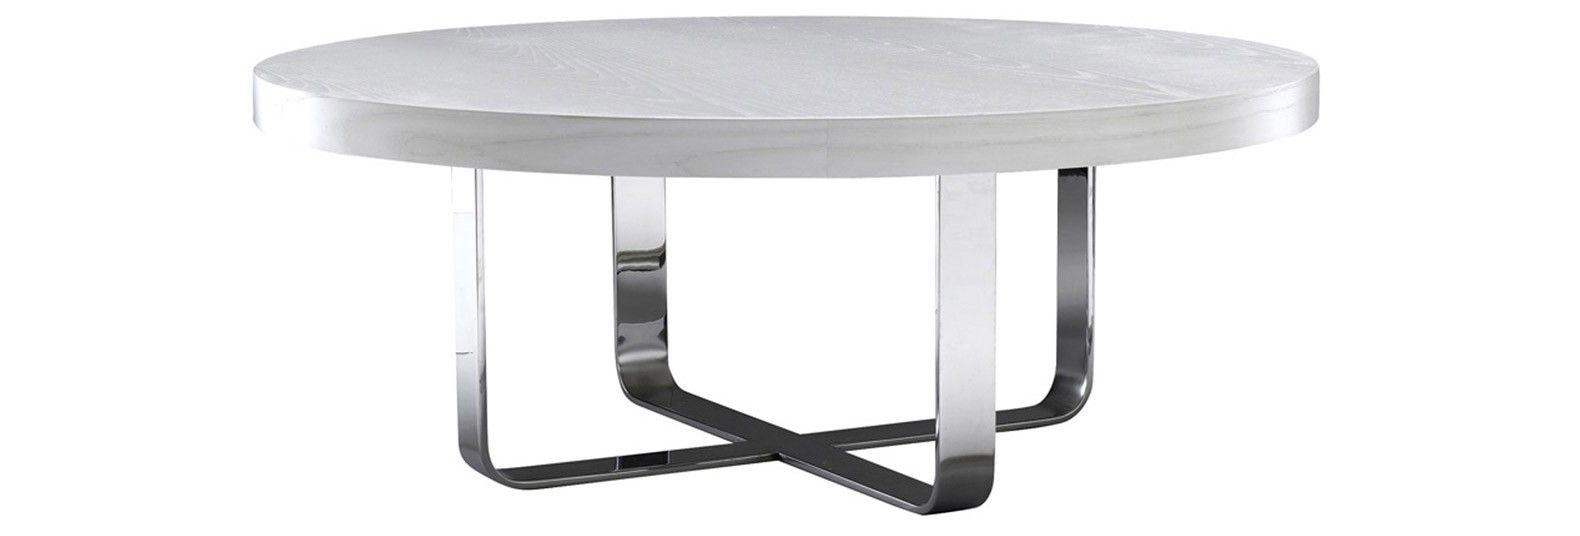 Soho Round Coffee Table By Coedition Now Available At Haute Living A Certified Dealer Of Coedition Furniture Round Coffee Table Coffee Table Best Art Books [ 1313 x 2100 Pixel ]